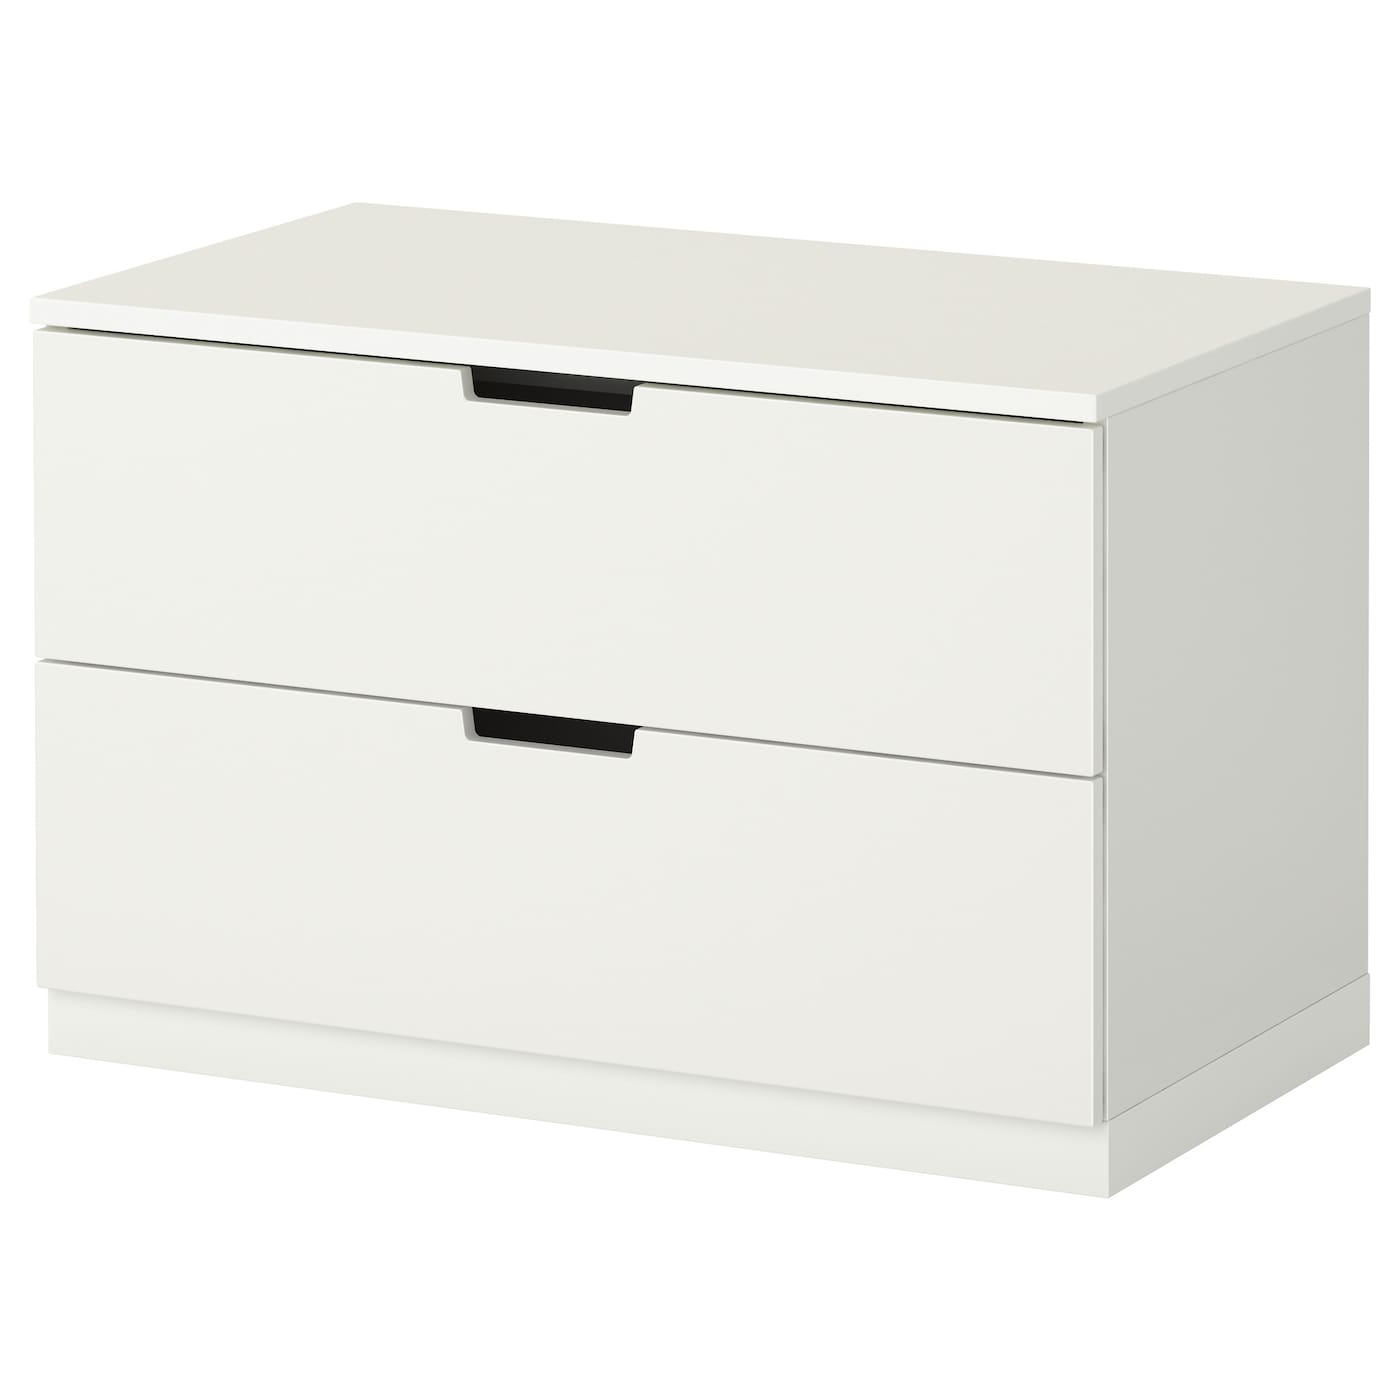 Chest of drawers dressers ikea for Kommode 140 x 100